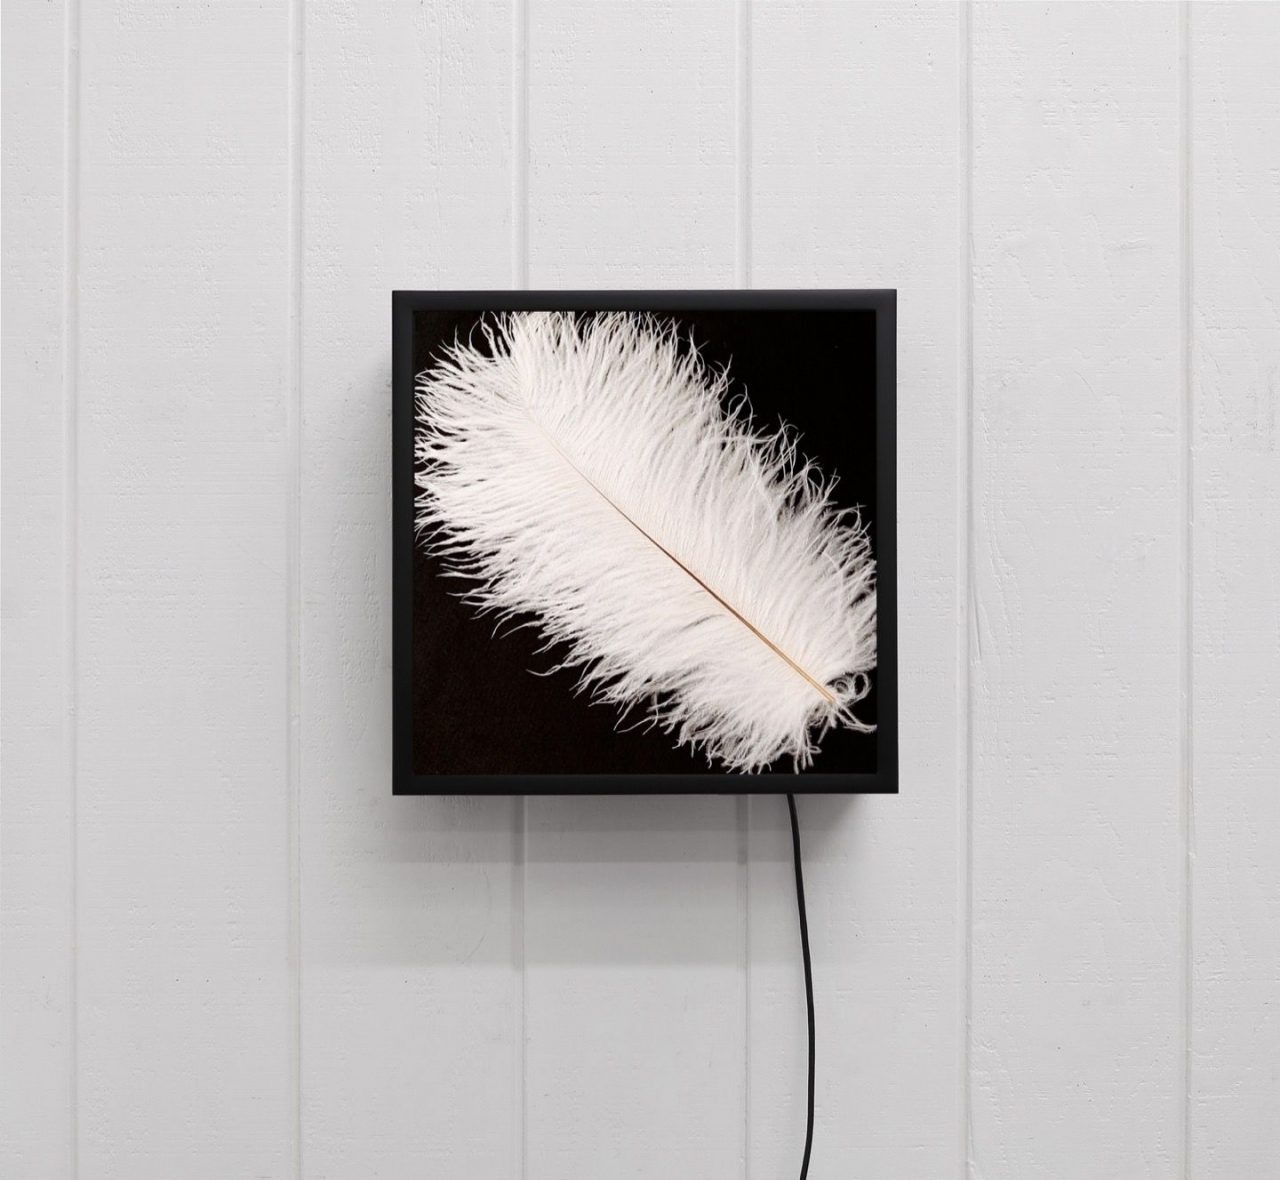 Out-Of-Place Artifacts | Knife, Sole, Feather, Scrubbers, 2015